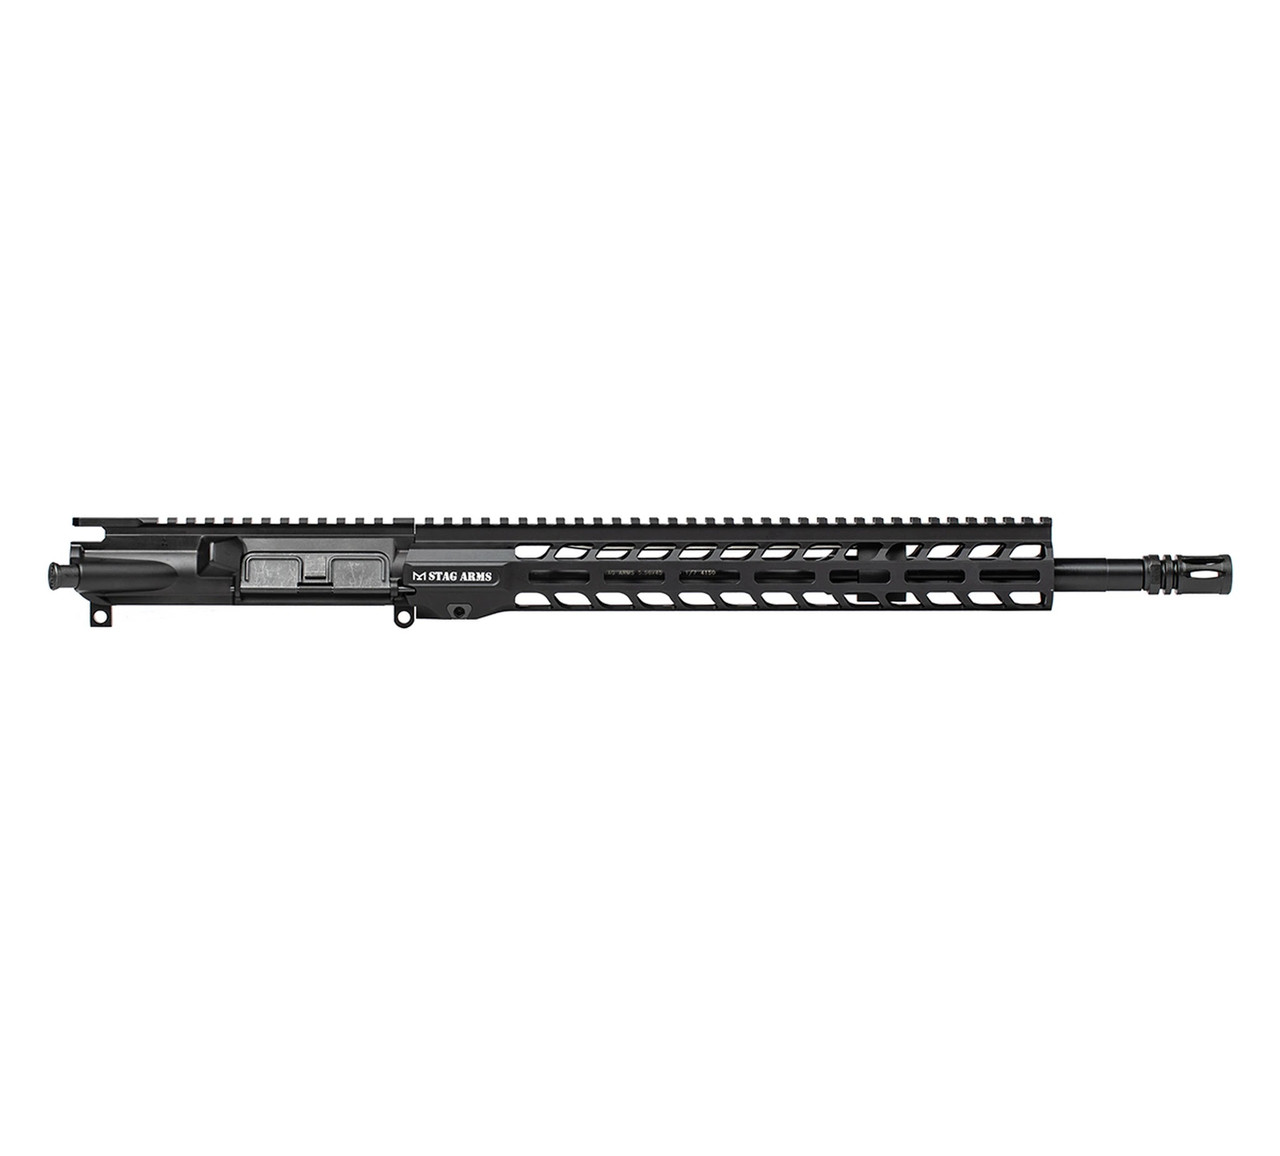 Stag Arms Stag15 16 in Tactical Upper CALIFORNIA LEGAL - .223/5.56